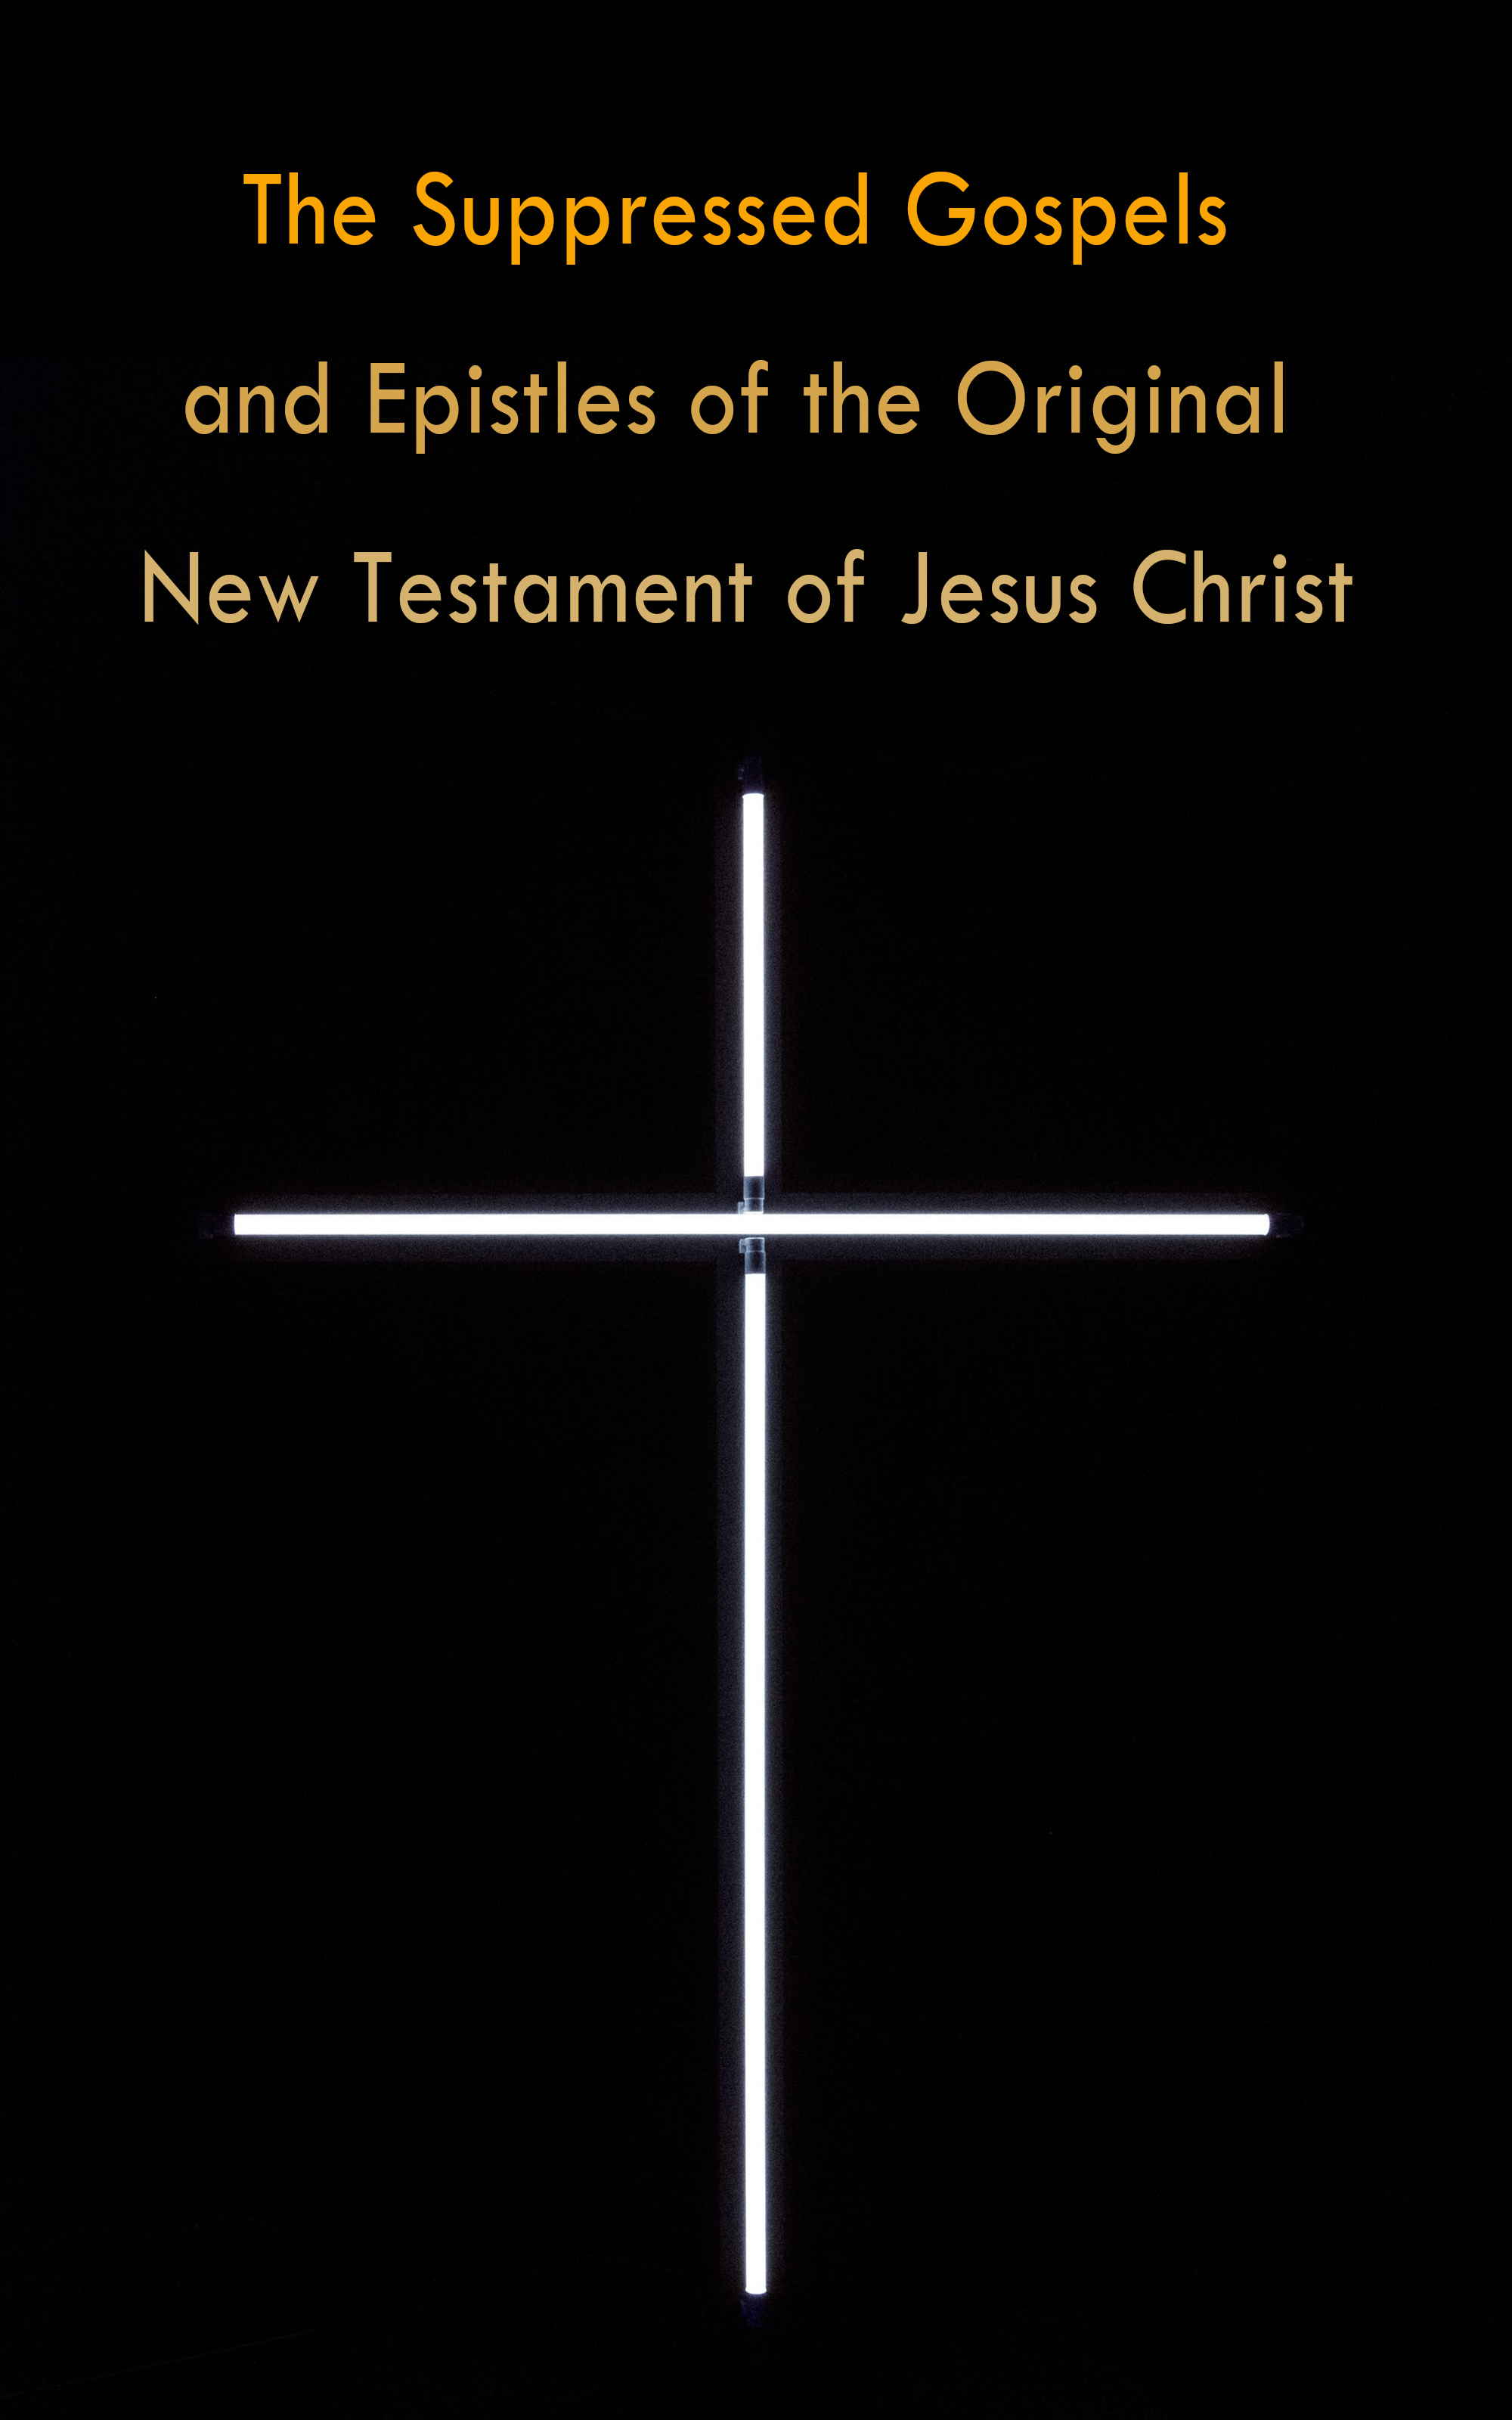 Various The Suppressed Gospels and Epistles of the Original New Testament of Jesus Christ william wake the suppressed gospels and epistles of the original new testament of jesus the christ volume 3 infancy of jesus christ page 8 page 6